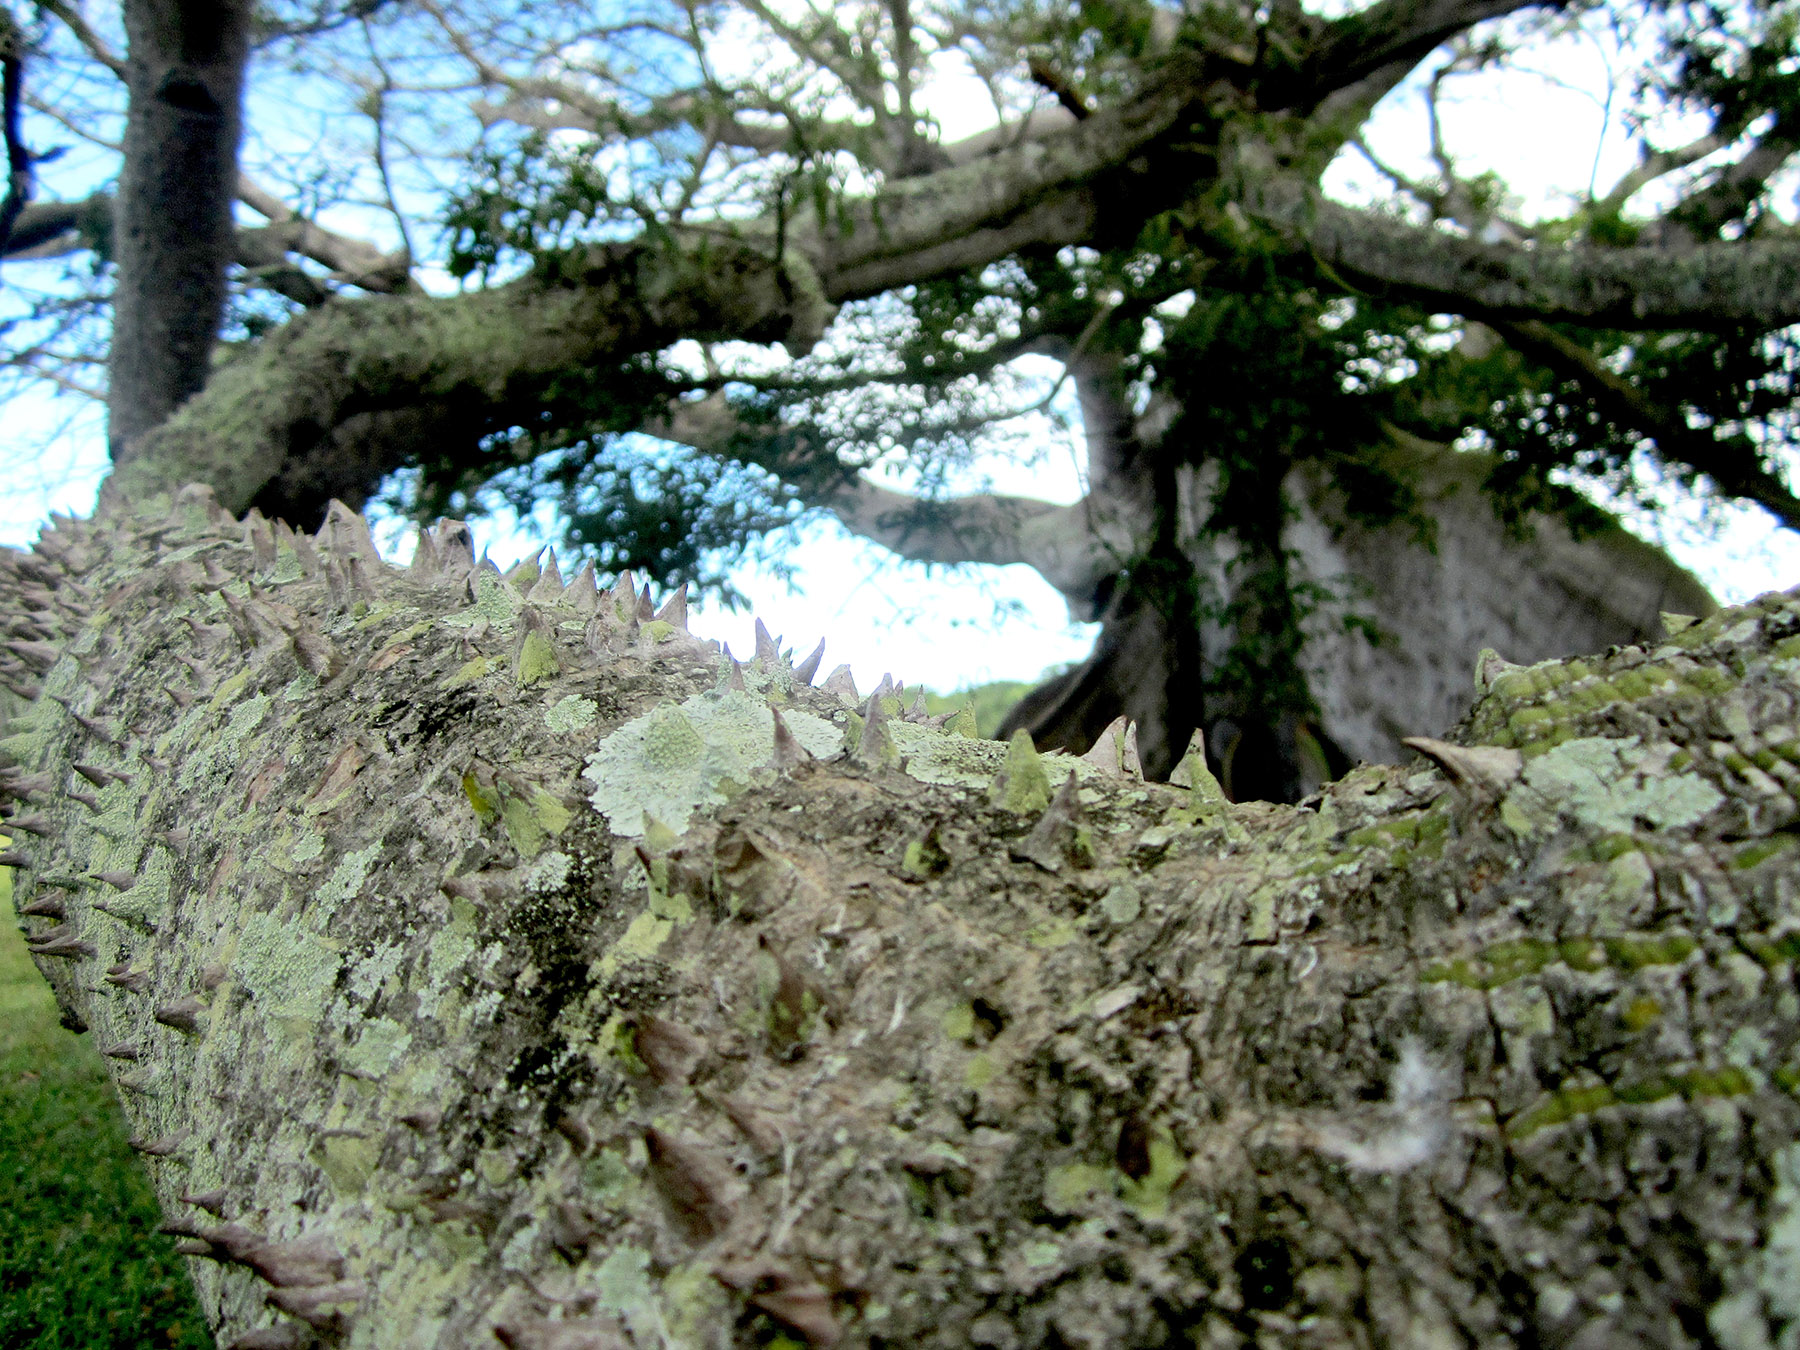 375-Year-Old Ceiba Tree in Vieques